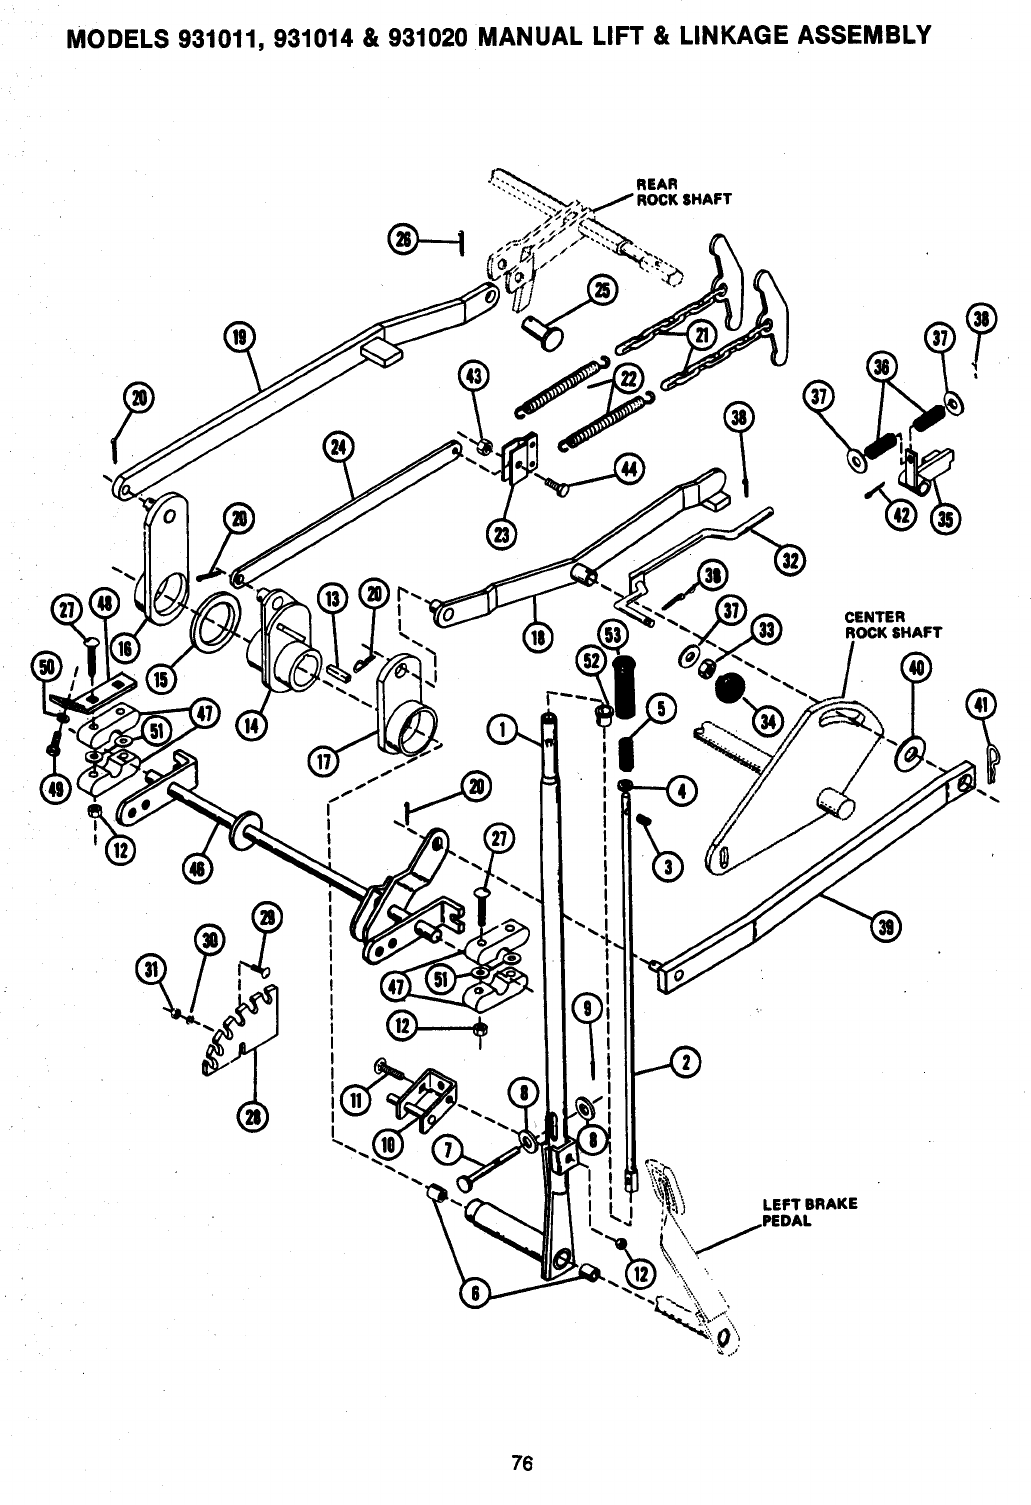 Page 77 of Ariens Lawn Mower 931 User Guide